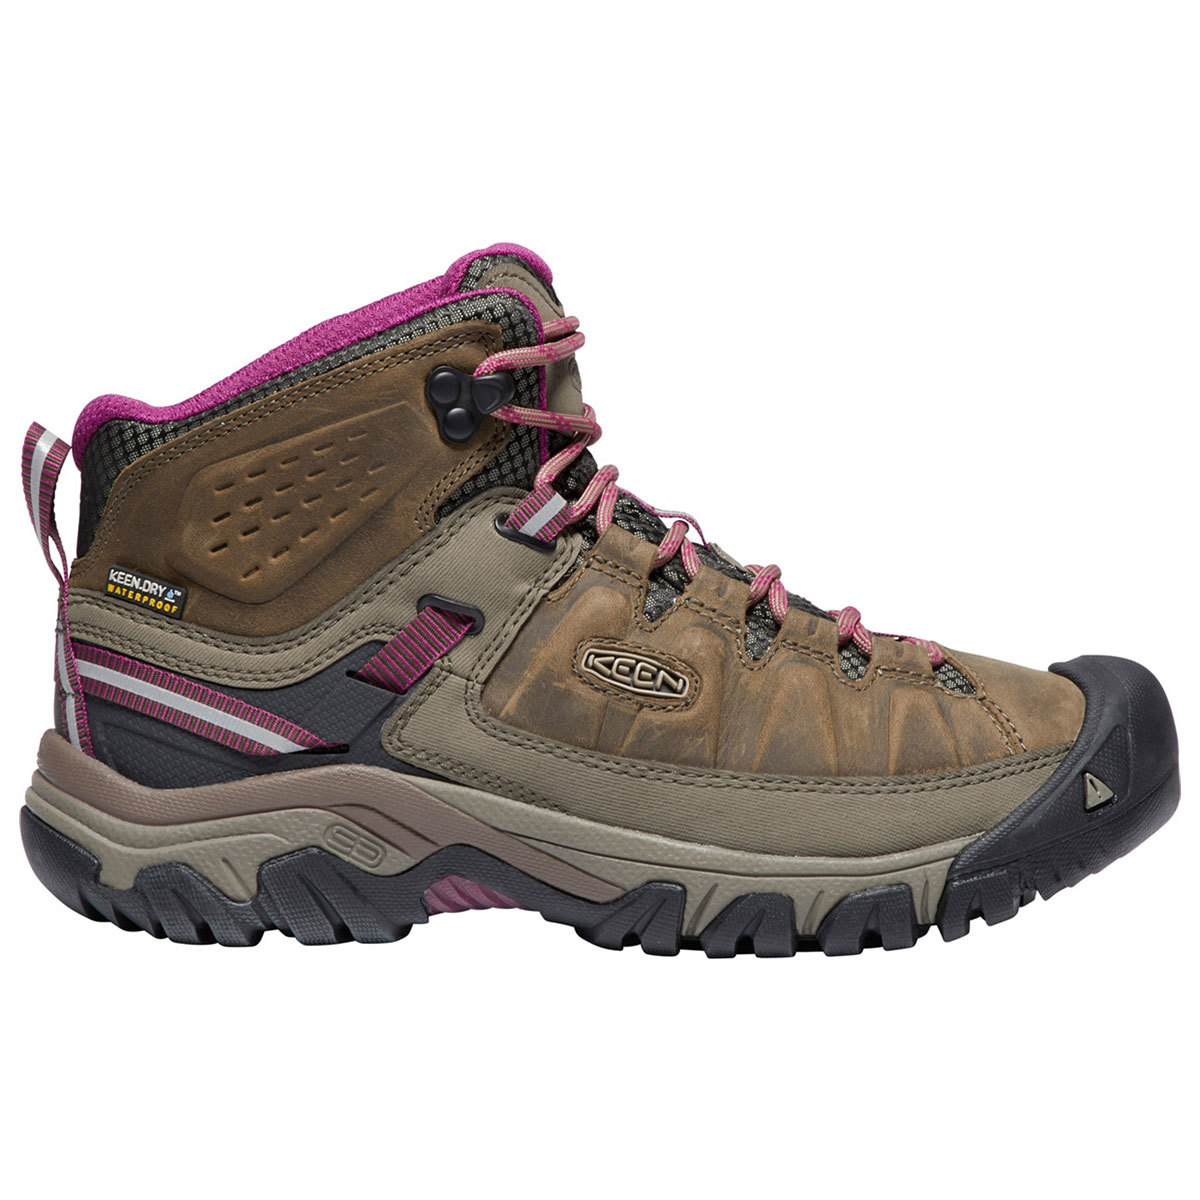 Keen Women's Targhee Iii Waterproof Mid Hiking Boots - Brown, 10